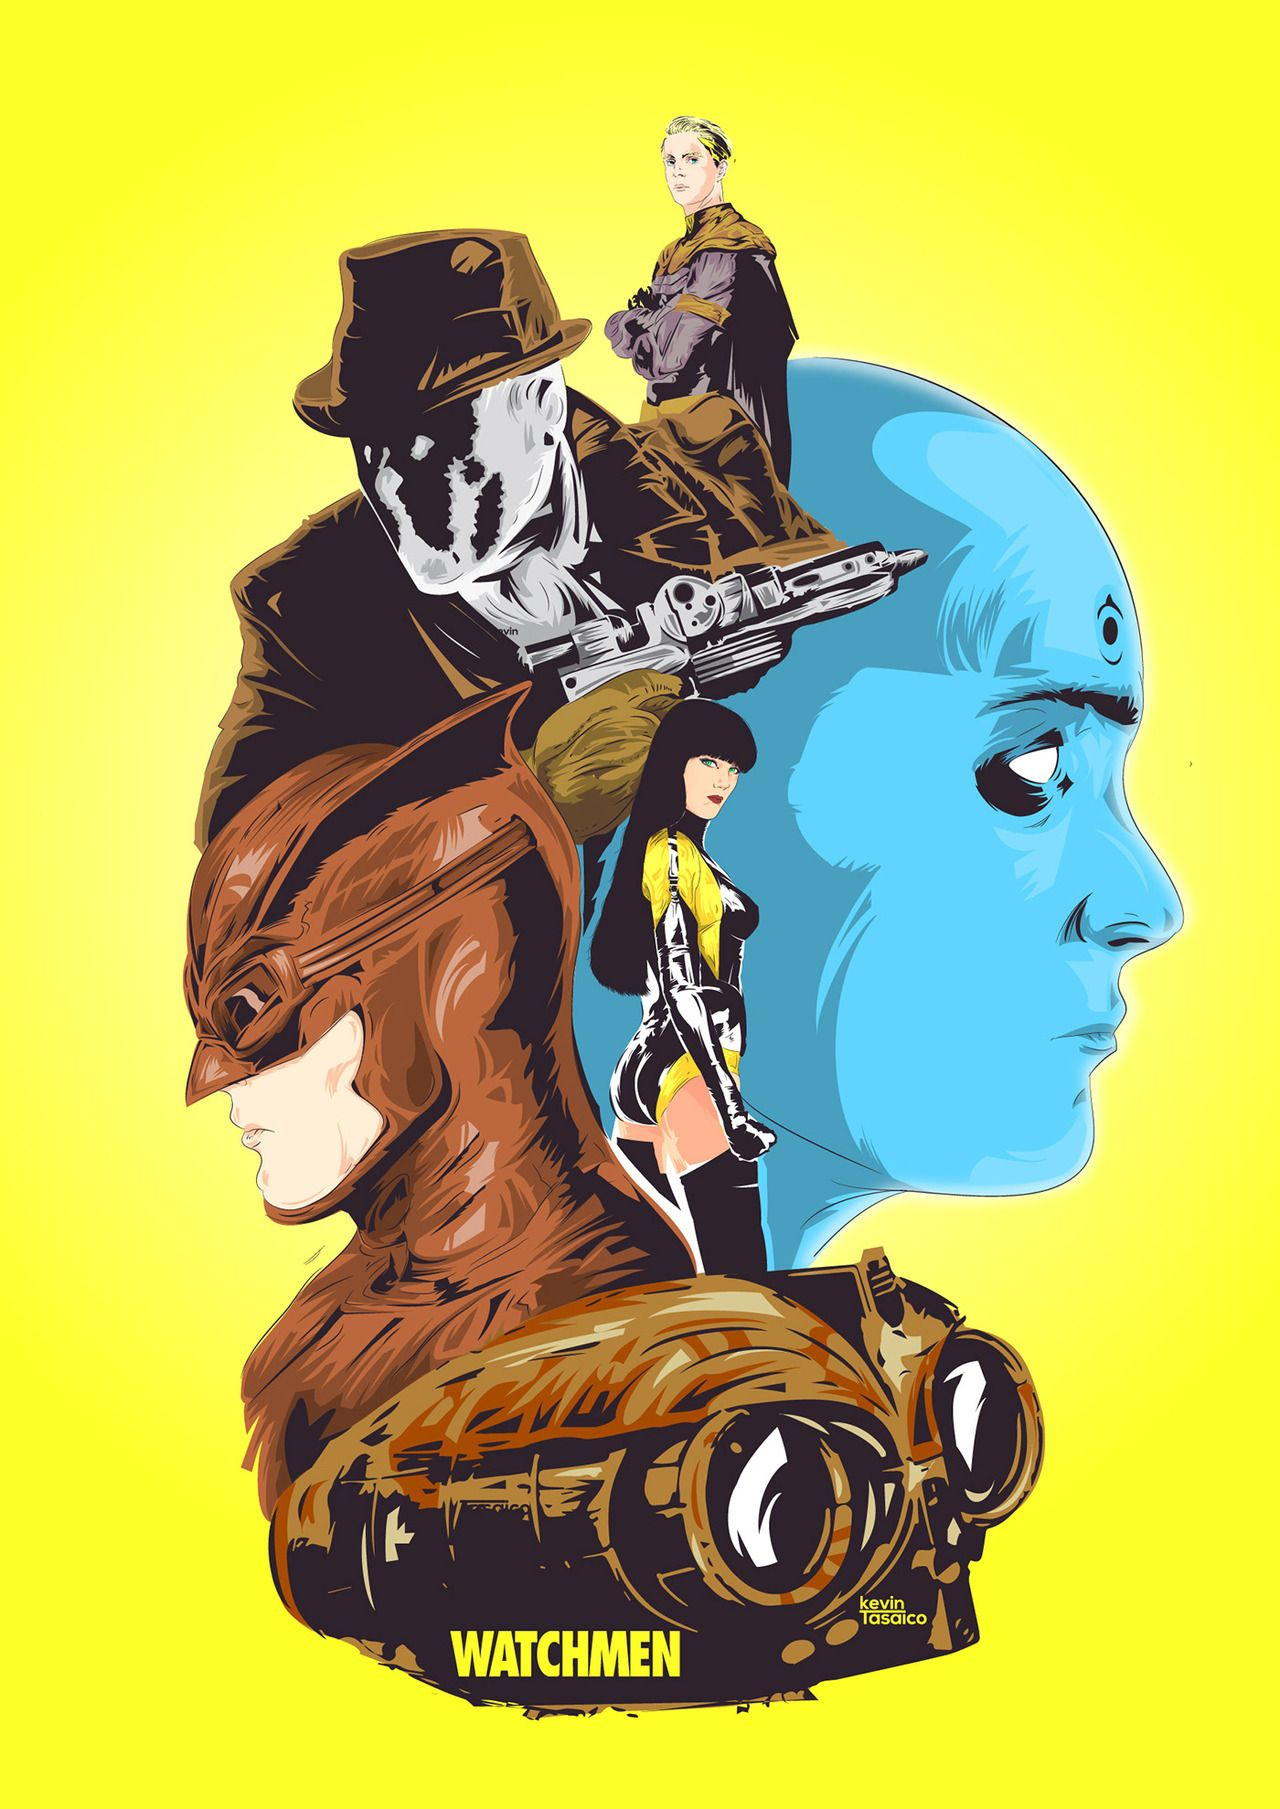 Herochan Watchmen Art By Kevin Tasaico Dc Comics Wallpaper Watchmen Comic Art